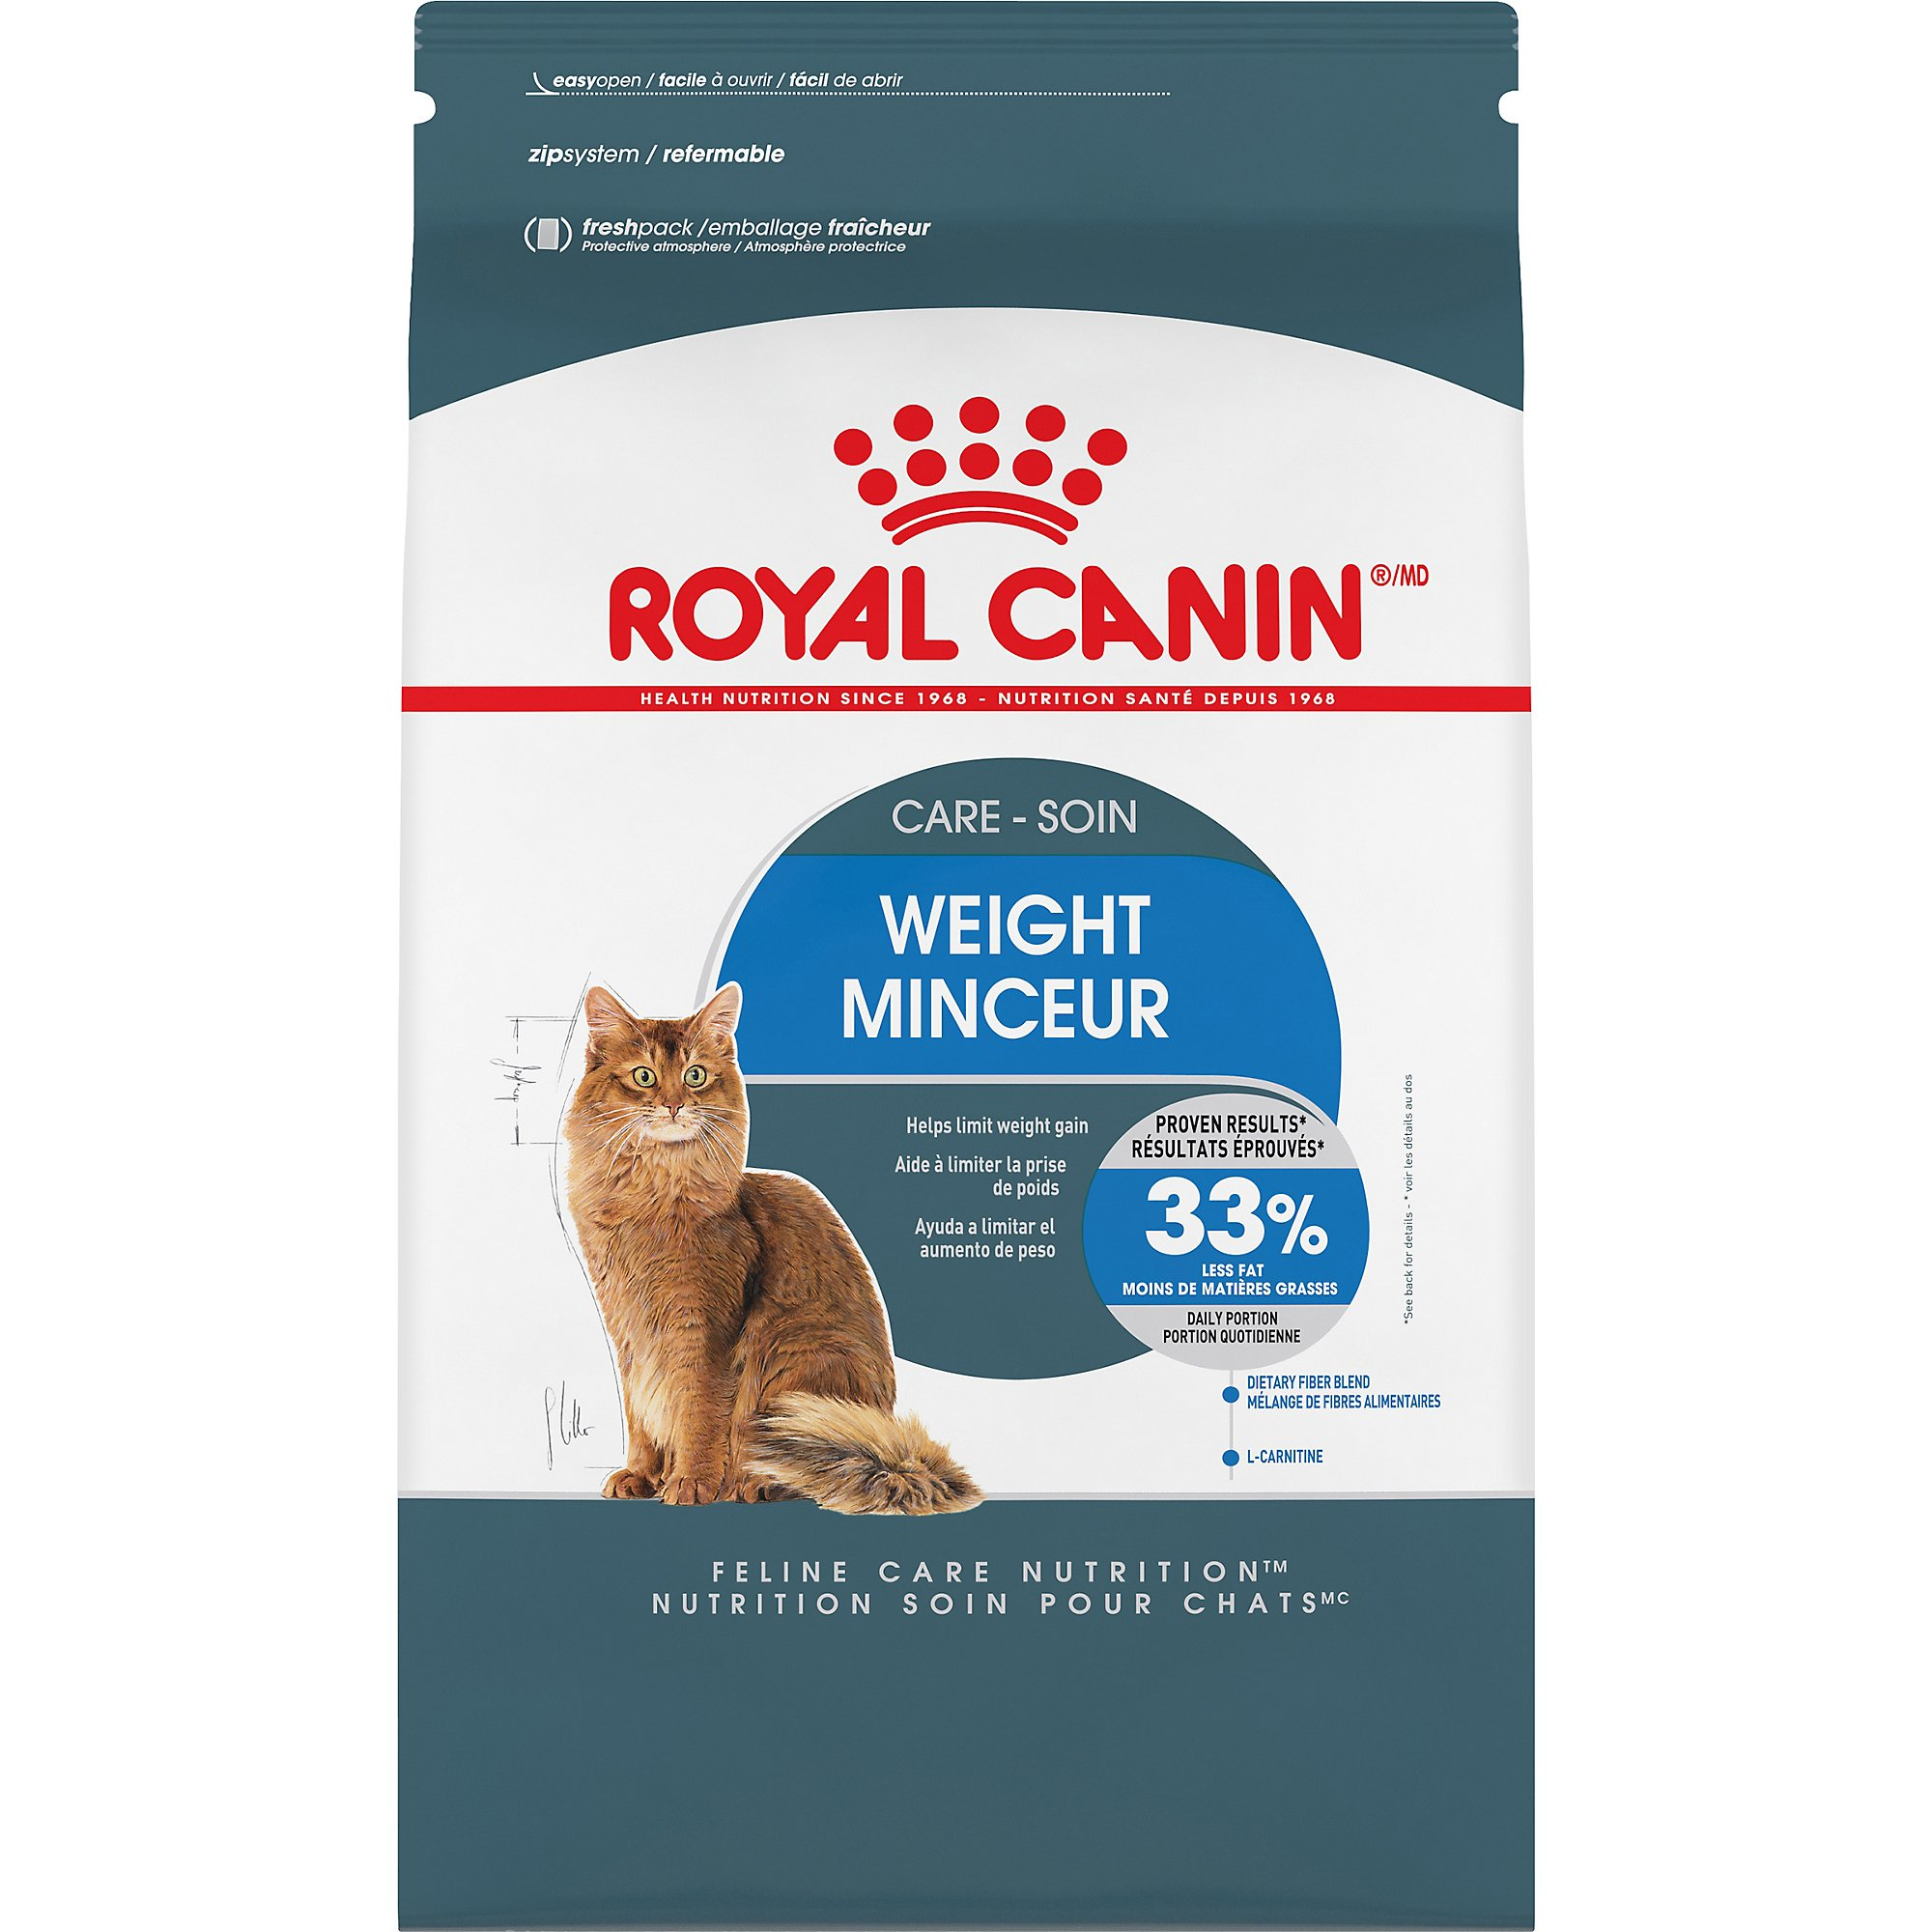 Royal Canin Feline Care Nutrition Weight Care Adult Dry Cat Food, 3 lb